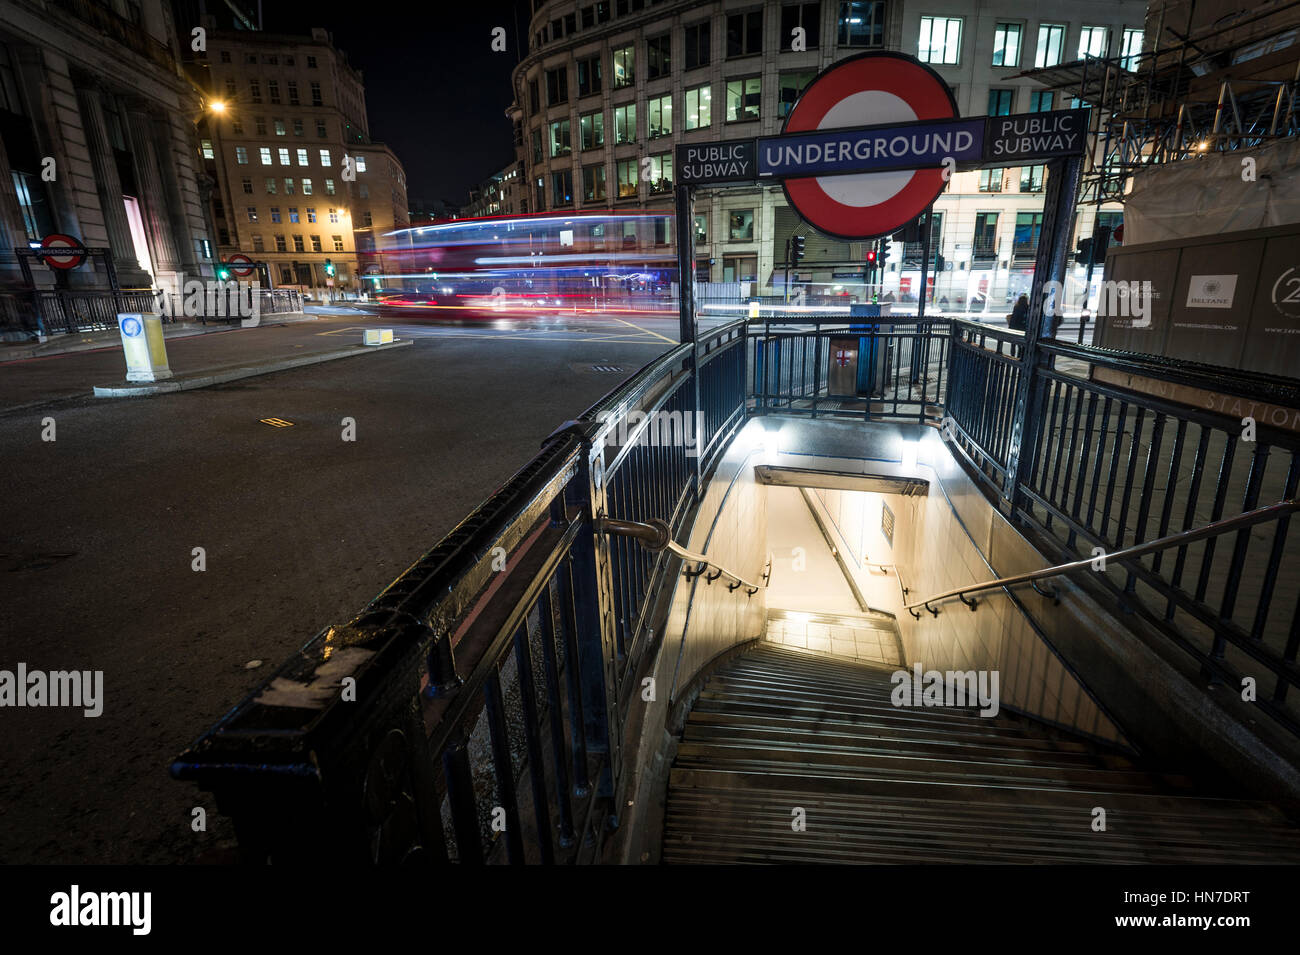 An entrance to Monument London Underground tube station on Cannon Street at night. - Stock Image